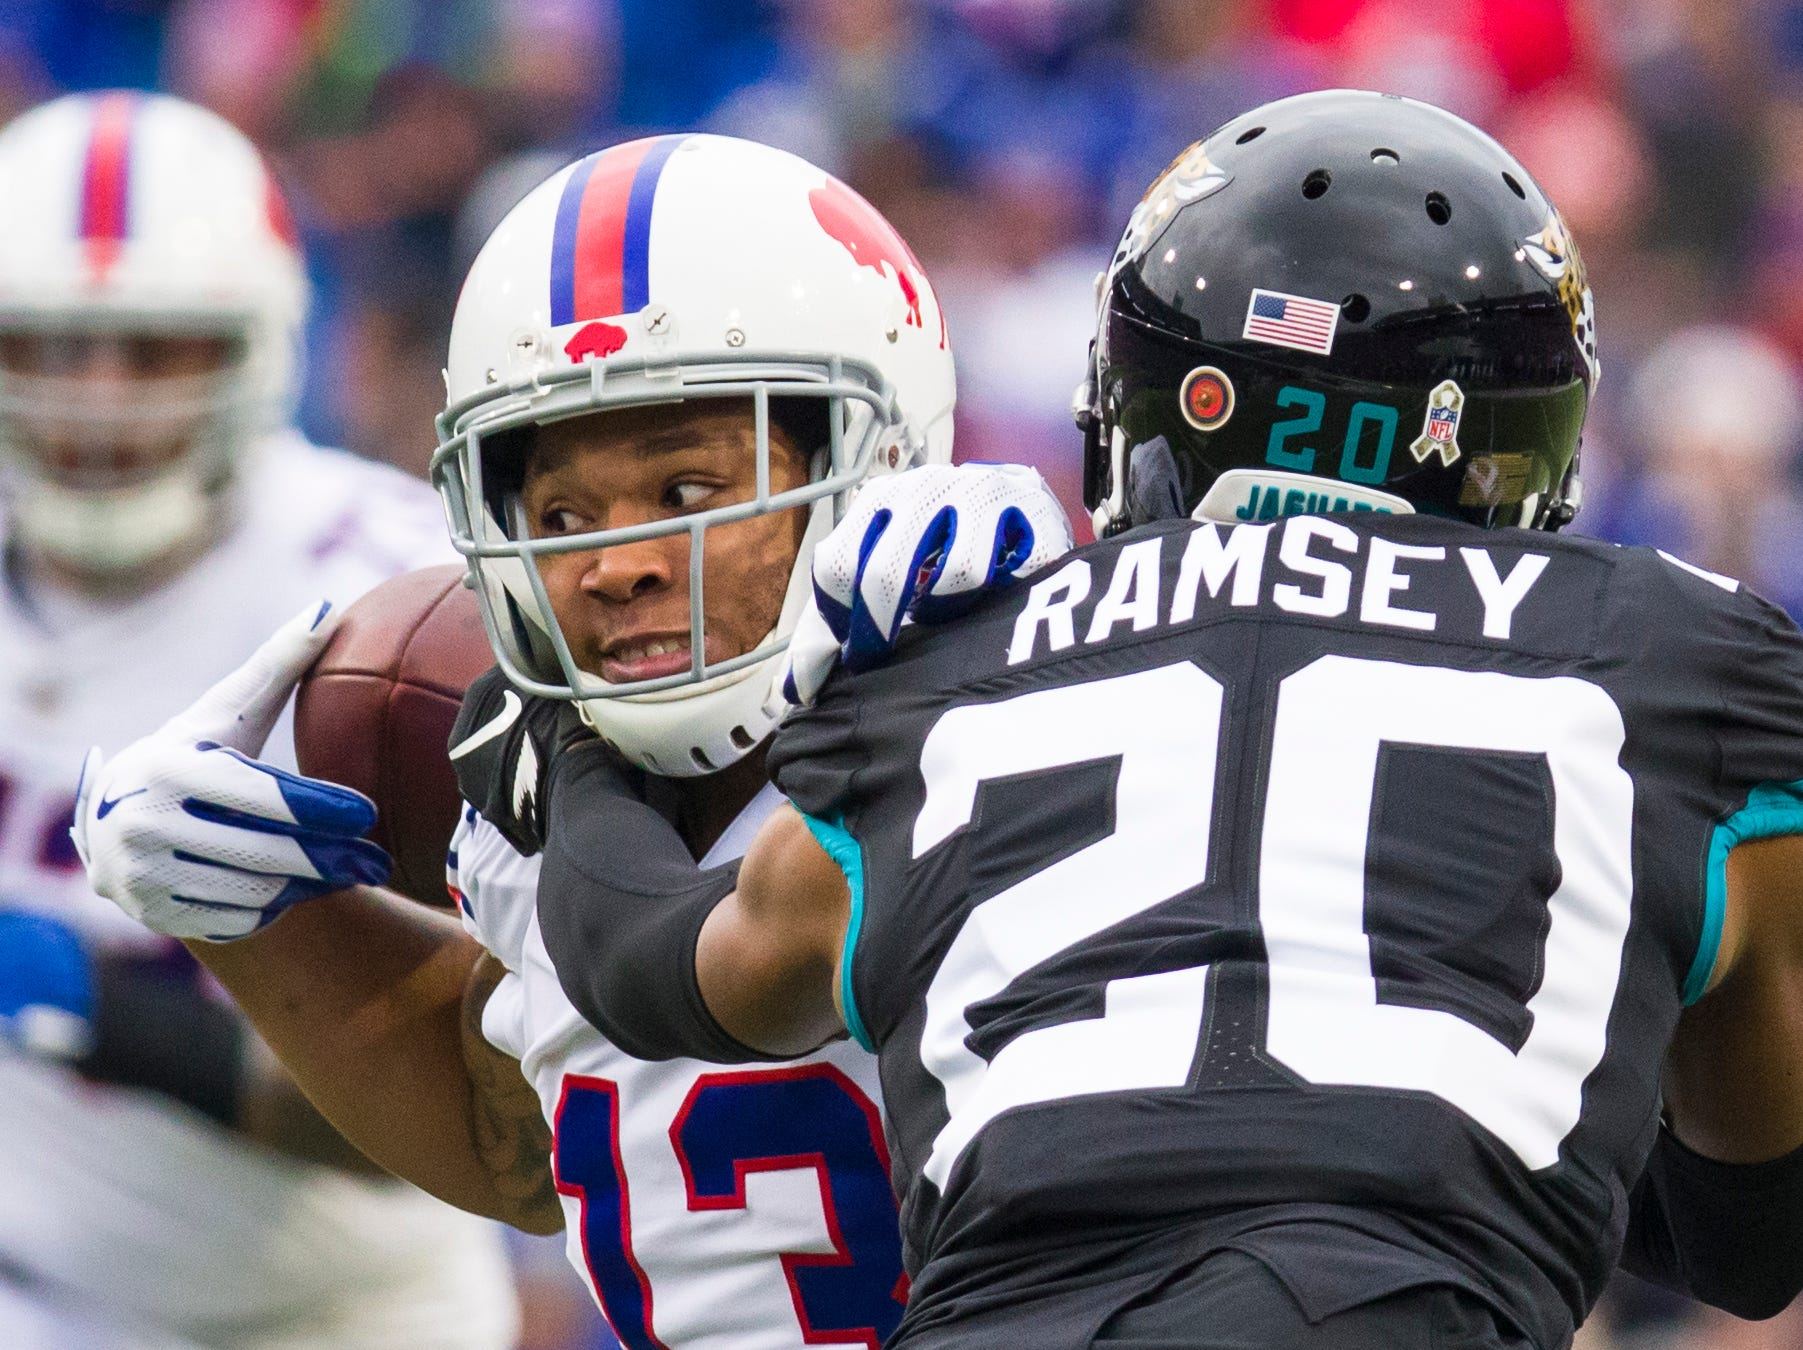 ORCHARD PARK, NY - NOVEMBER 25:  Kelvin Benjamin #13 of the Buffalo Bills fumbles and recovers a pass as Jalen Ramsey #20 of the Jacksonville Jaguars makes contact during the first quarter at New Era Field on November 25, 2018 in Orchard Park, New York.  (Photo by Brett Carlsen/Getty Images)